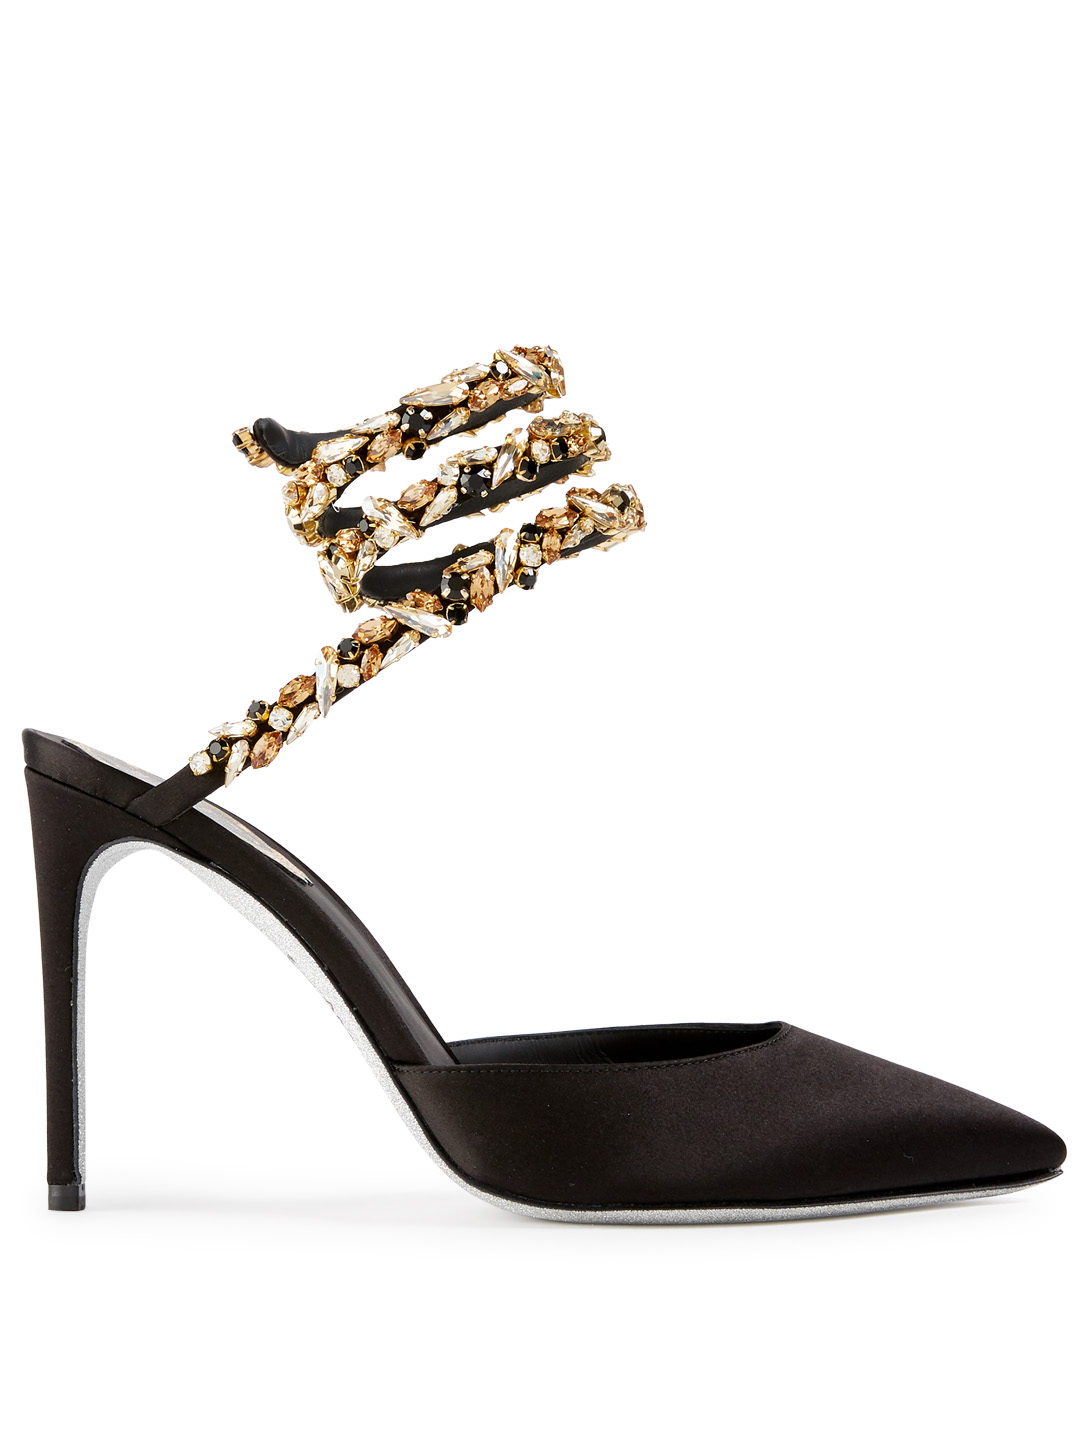 RENE CAOVILLA Satin Pumps With Crystal Strap Womens Black